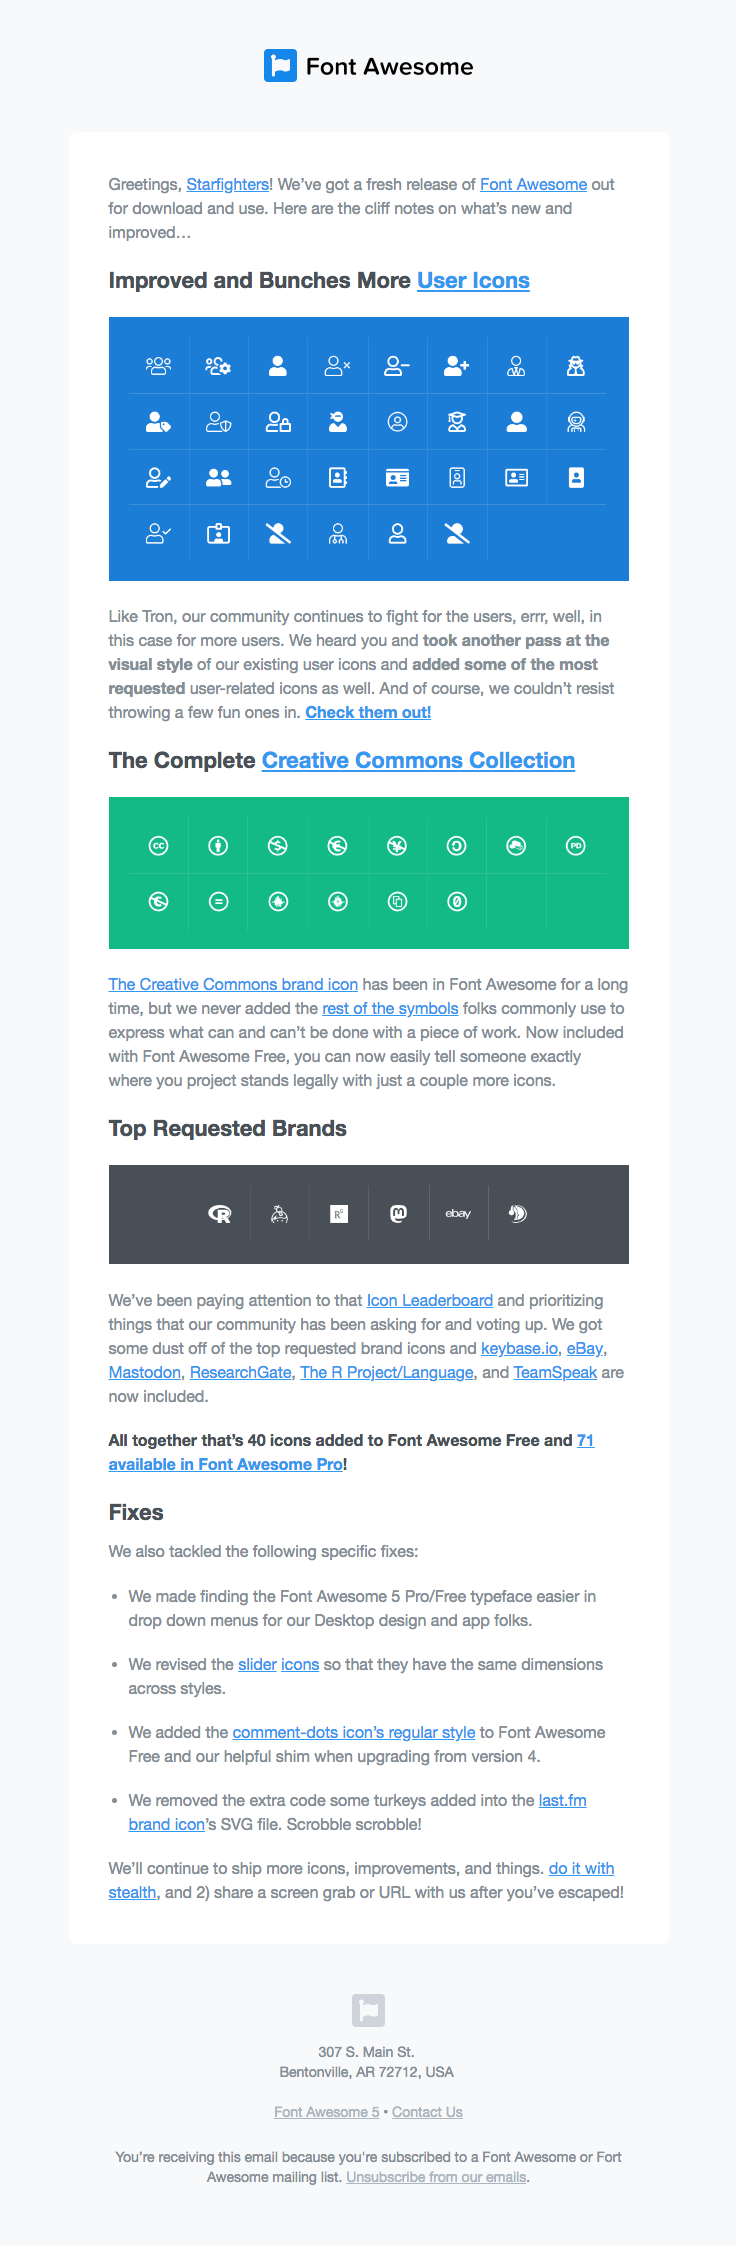 Font Awesome sent this email with the subject line What's